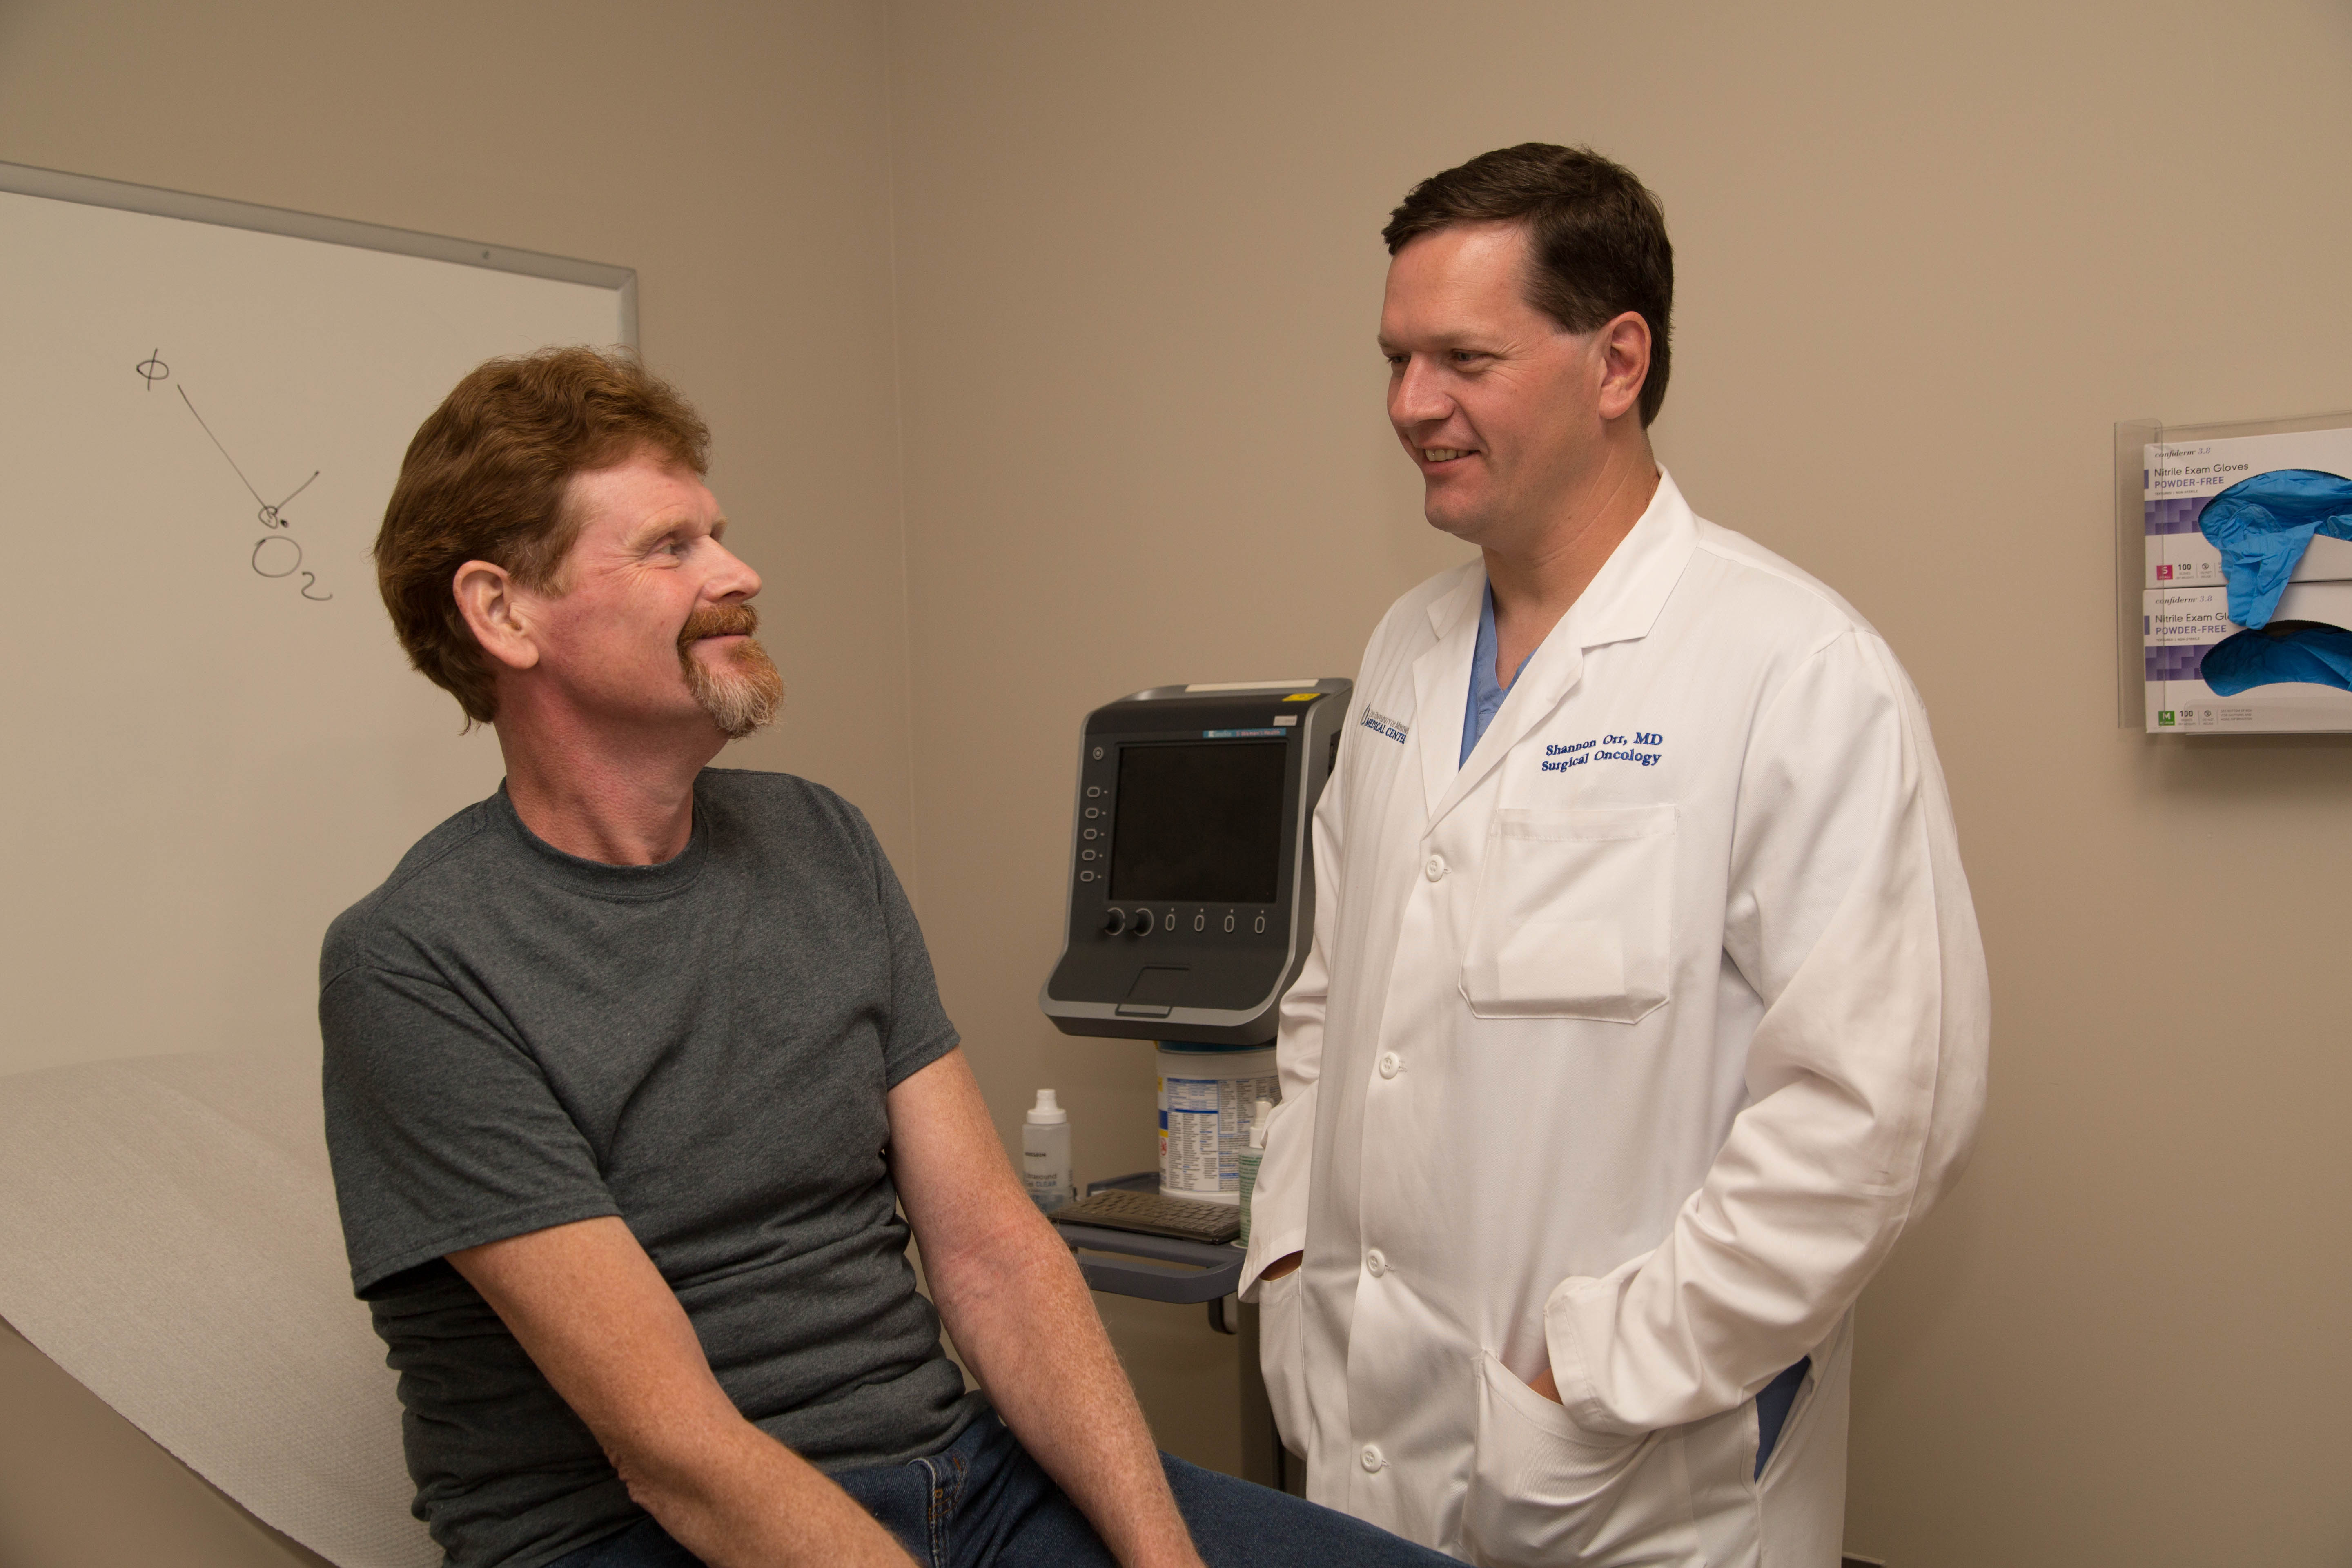 Unique surgery gives Mississippi man second chance - University of ...